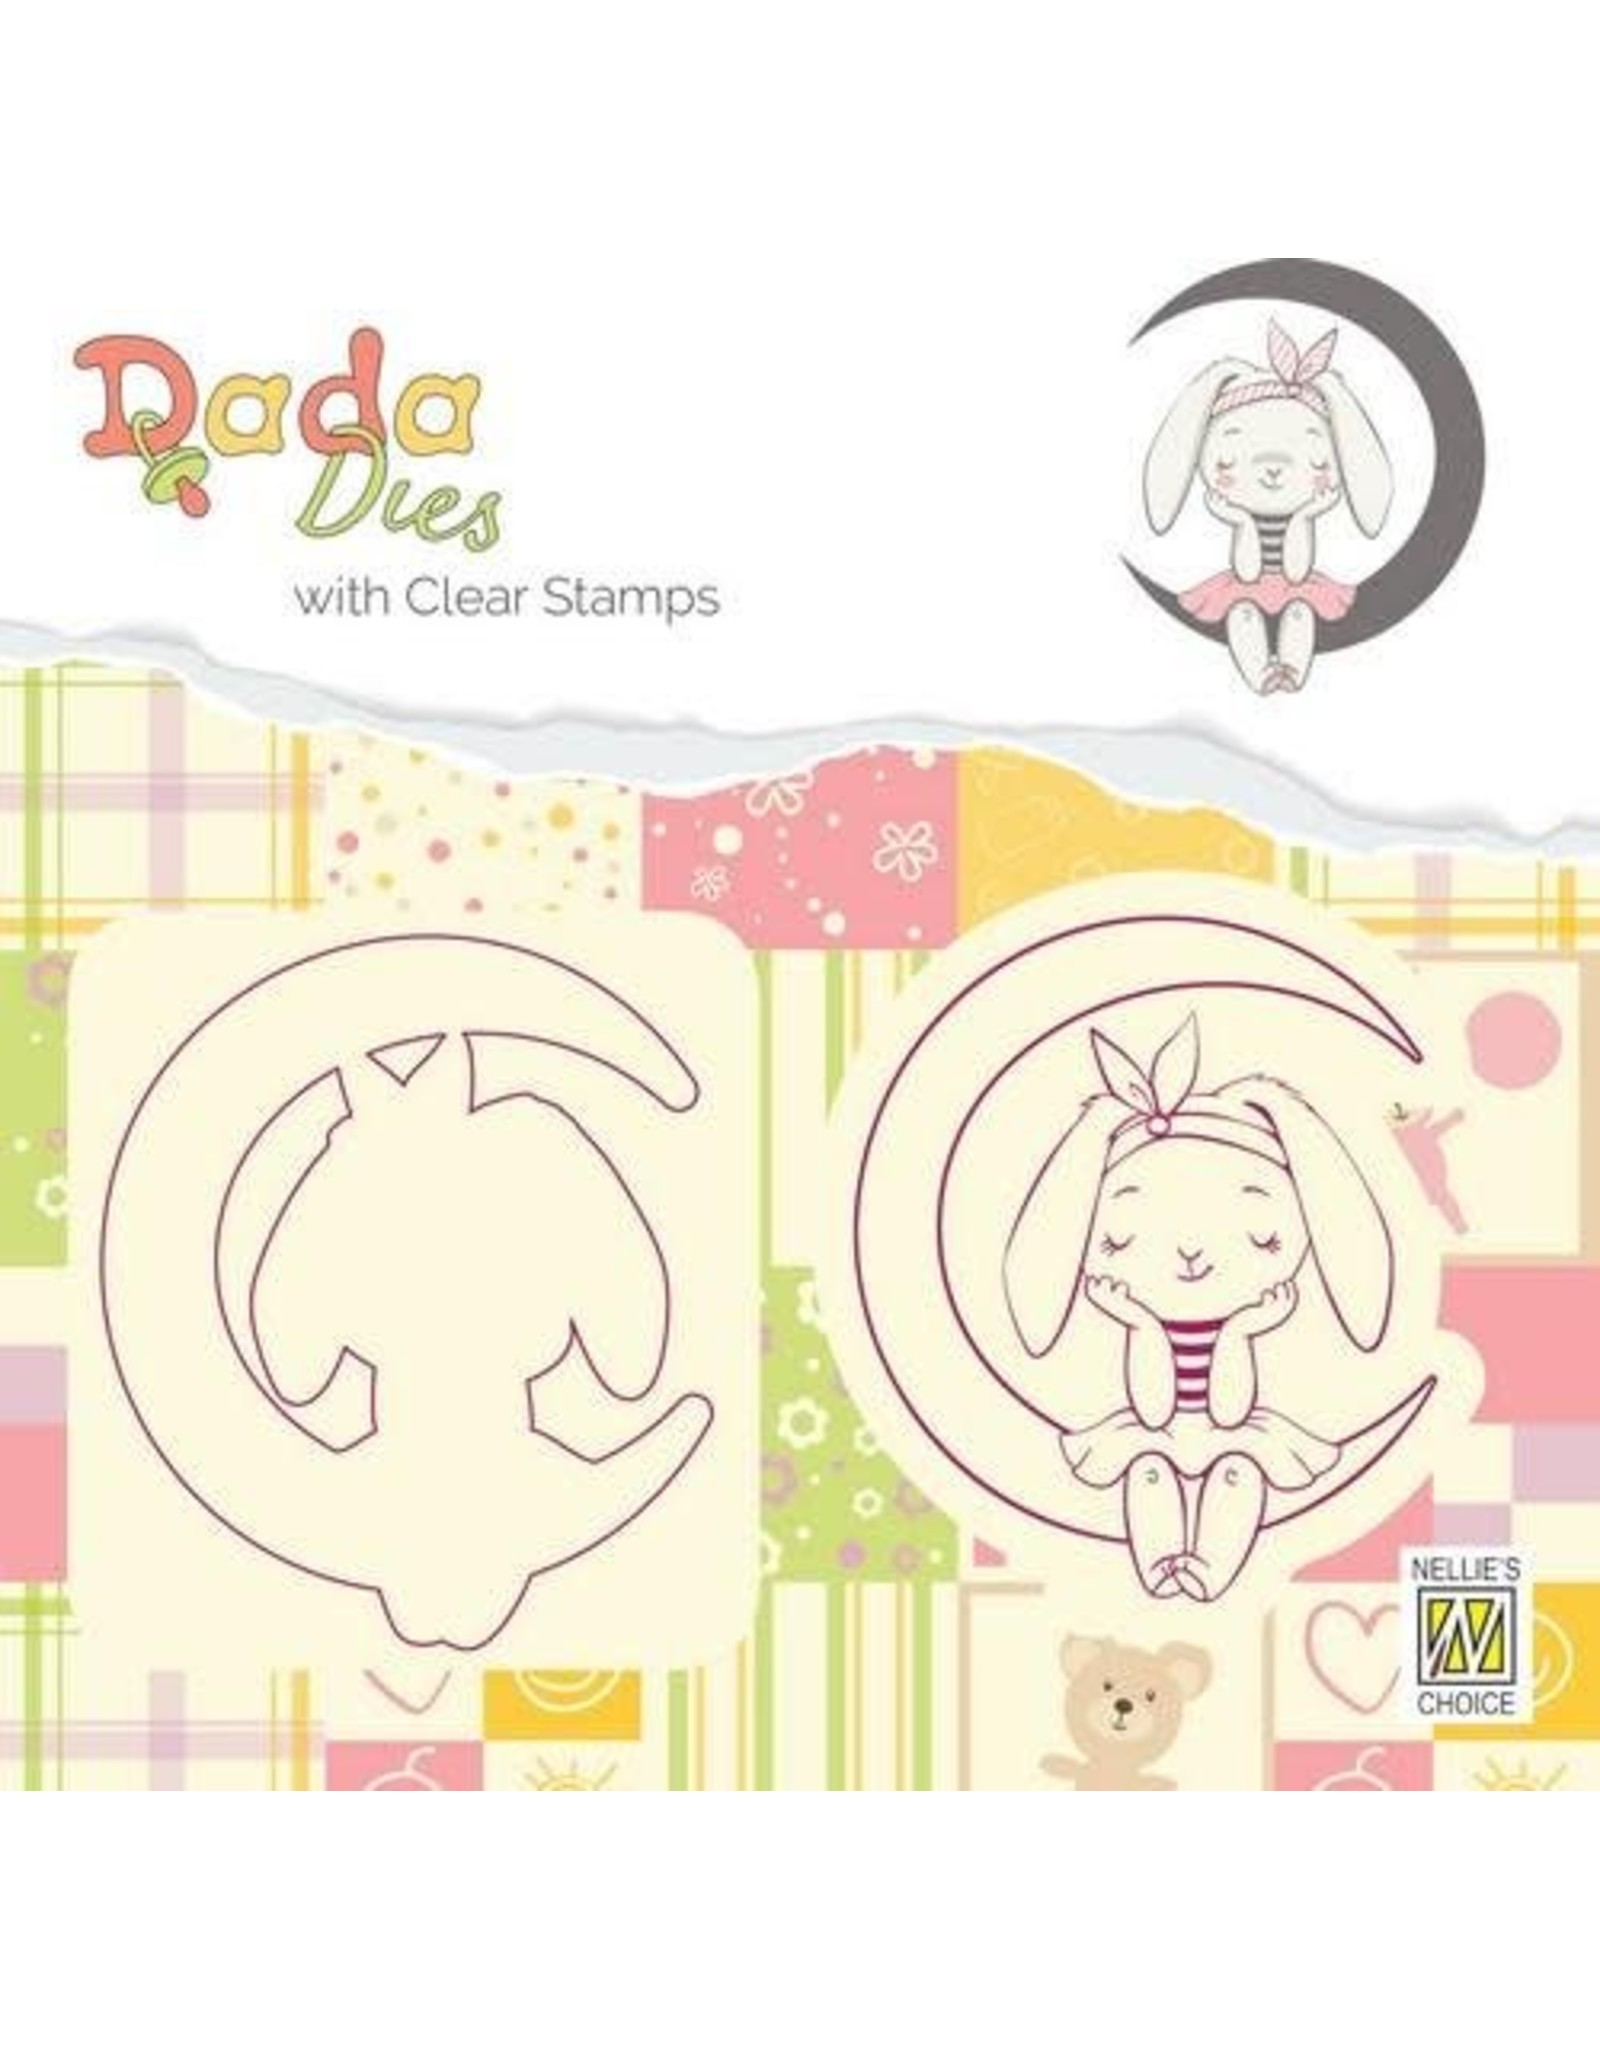 Nellie's Choice Nellies Choice DADA Die with clear stamp konijn op maan DDCS001 46x54 mm